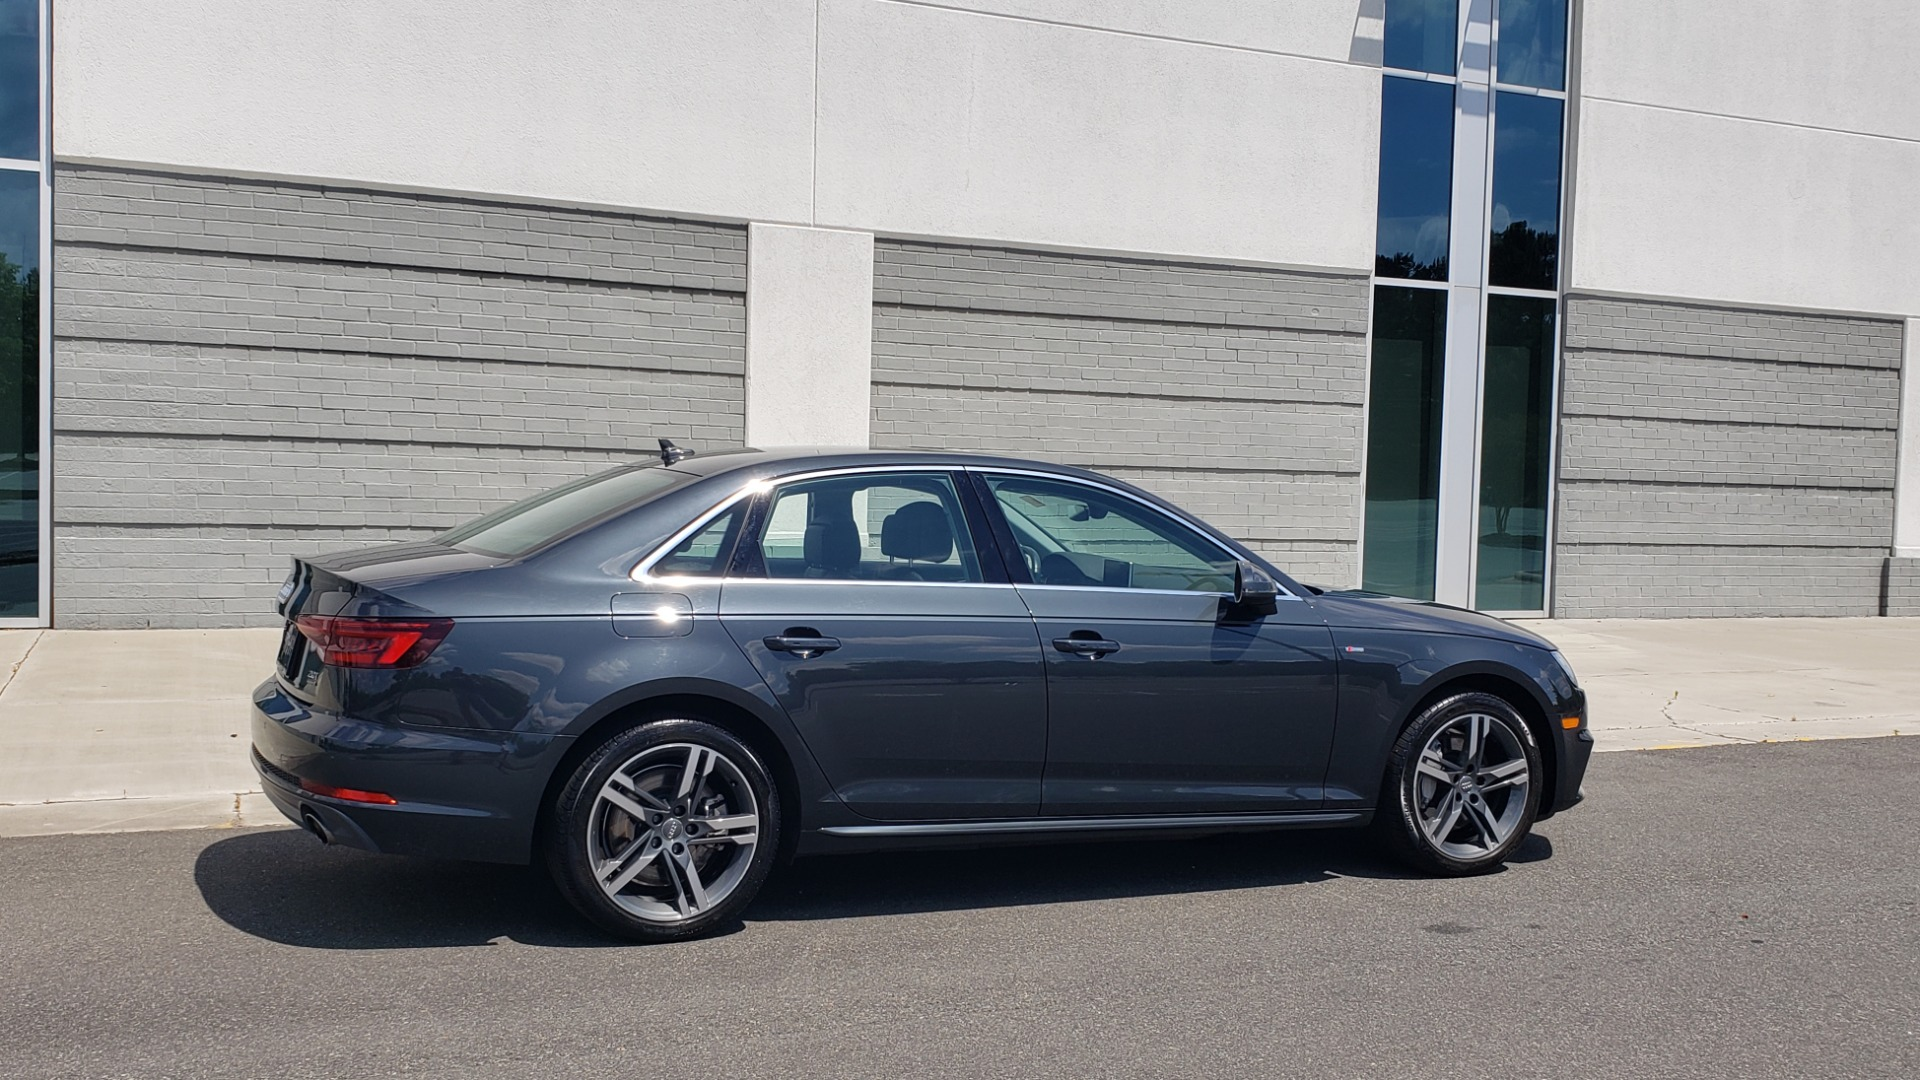 Used 2018 Audi A4 TECH PREMIUM PLUS / NAV / B&O SND / SUNROOF / CLD WTHR / REARVIEW for sale $28,595 at Formula Imports in Charlotte NC 28227 8